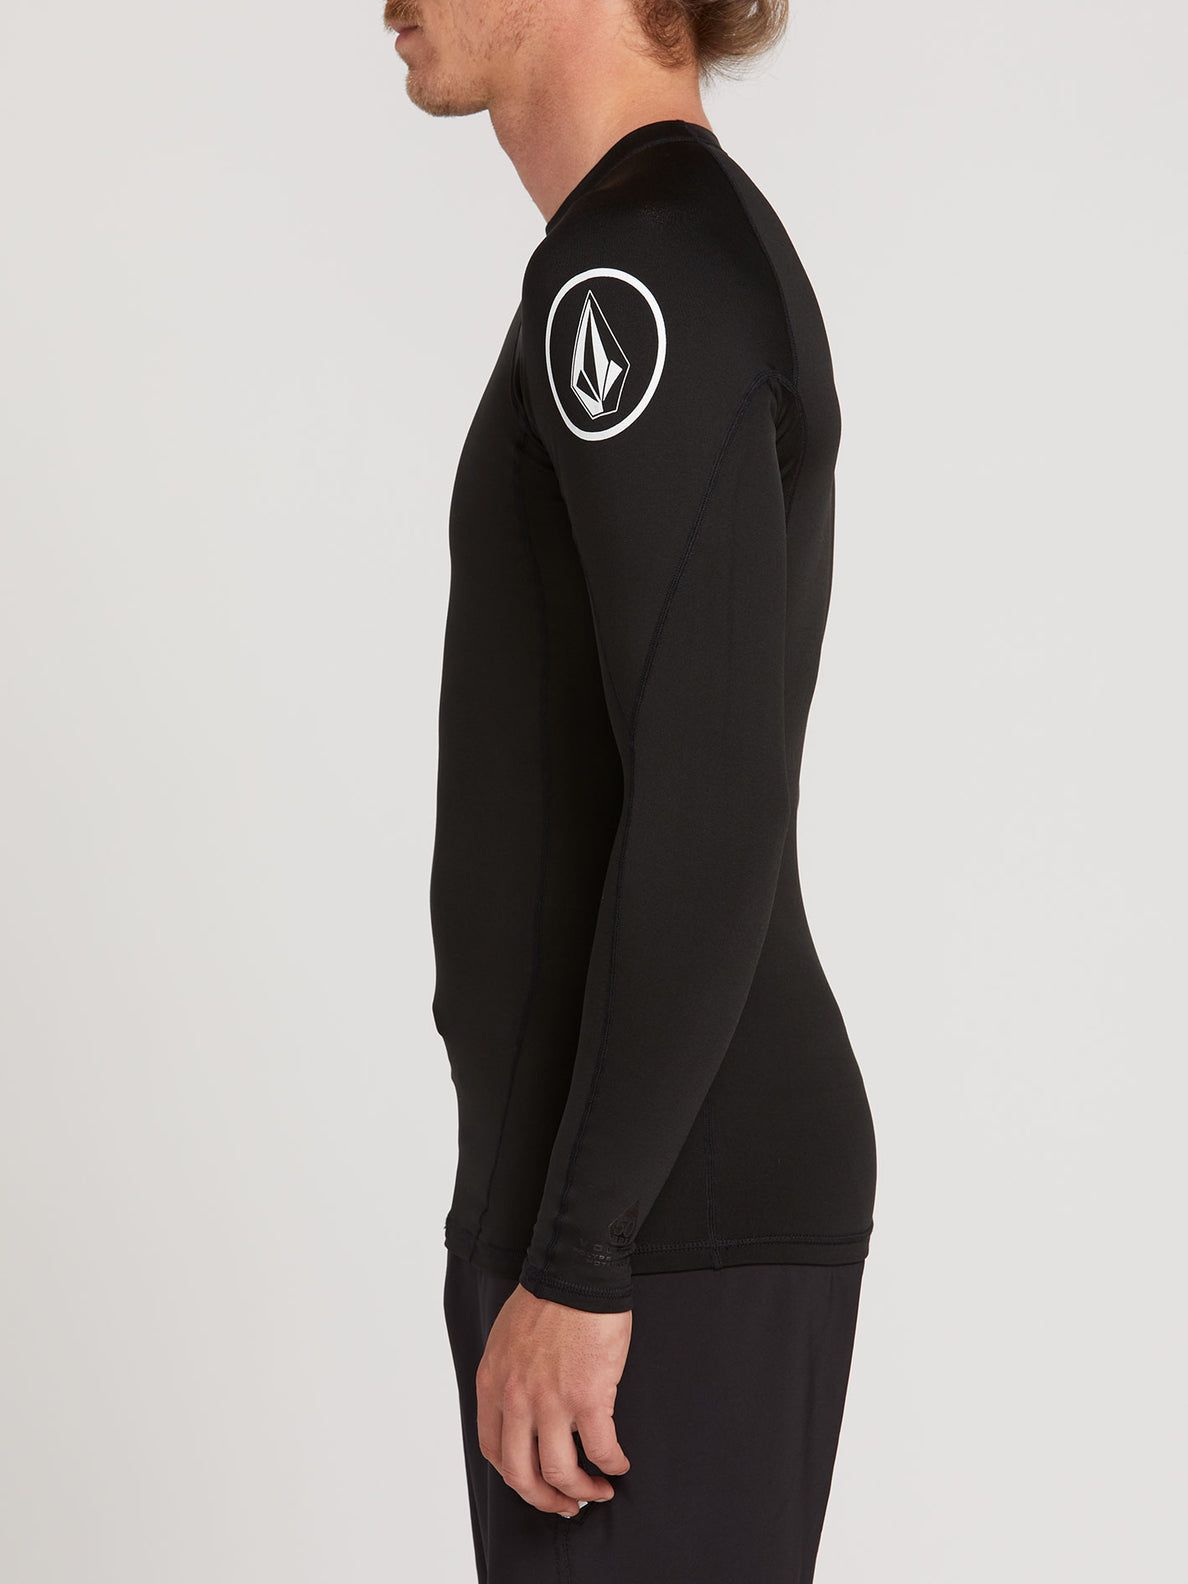 Hotainer Long Sleeve UPF 50 Rashguard - Black (A9312005_BLK) [1]